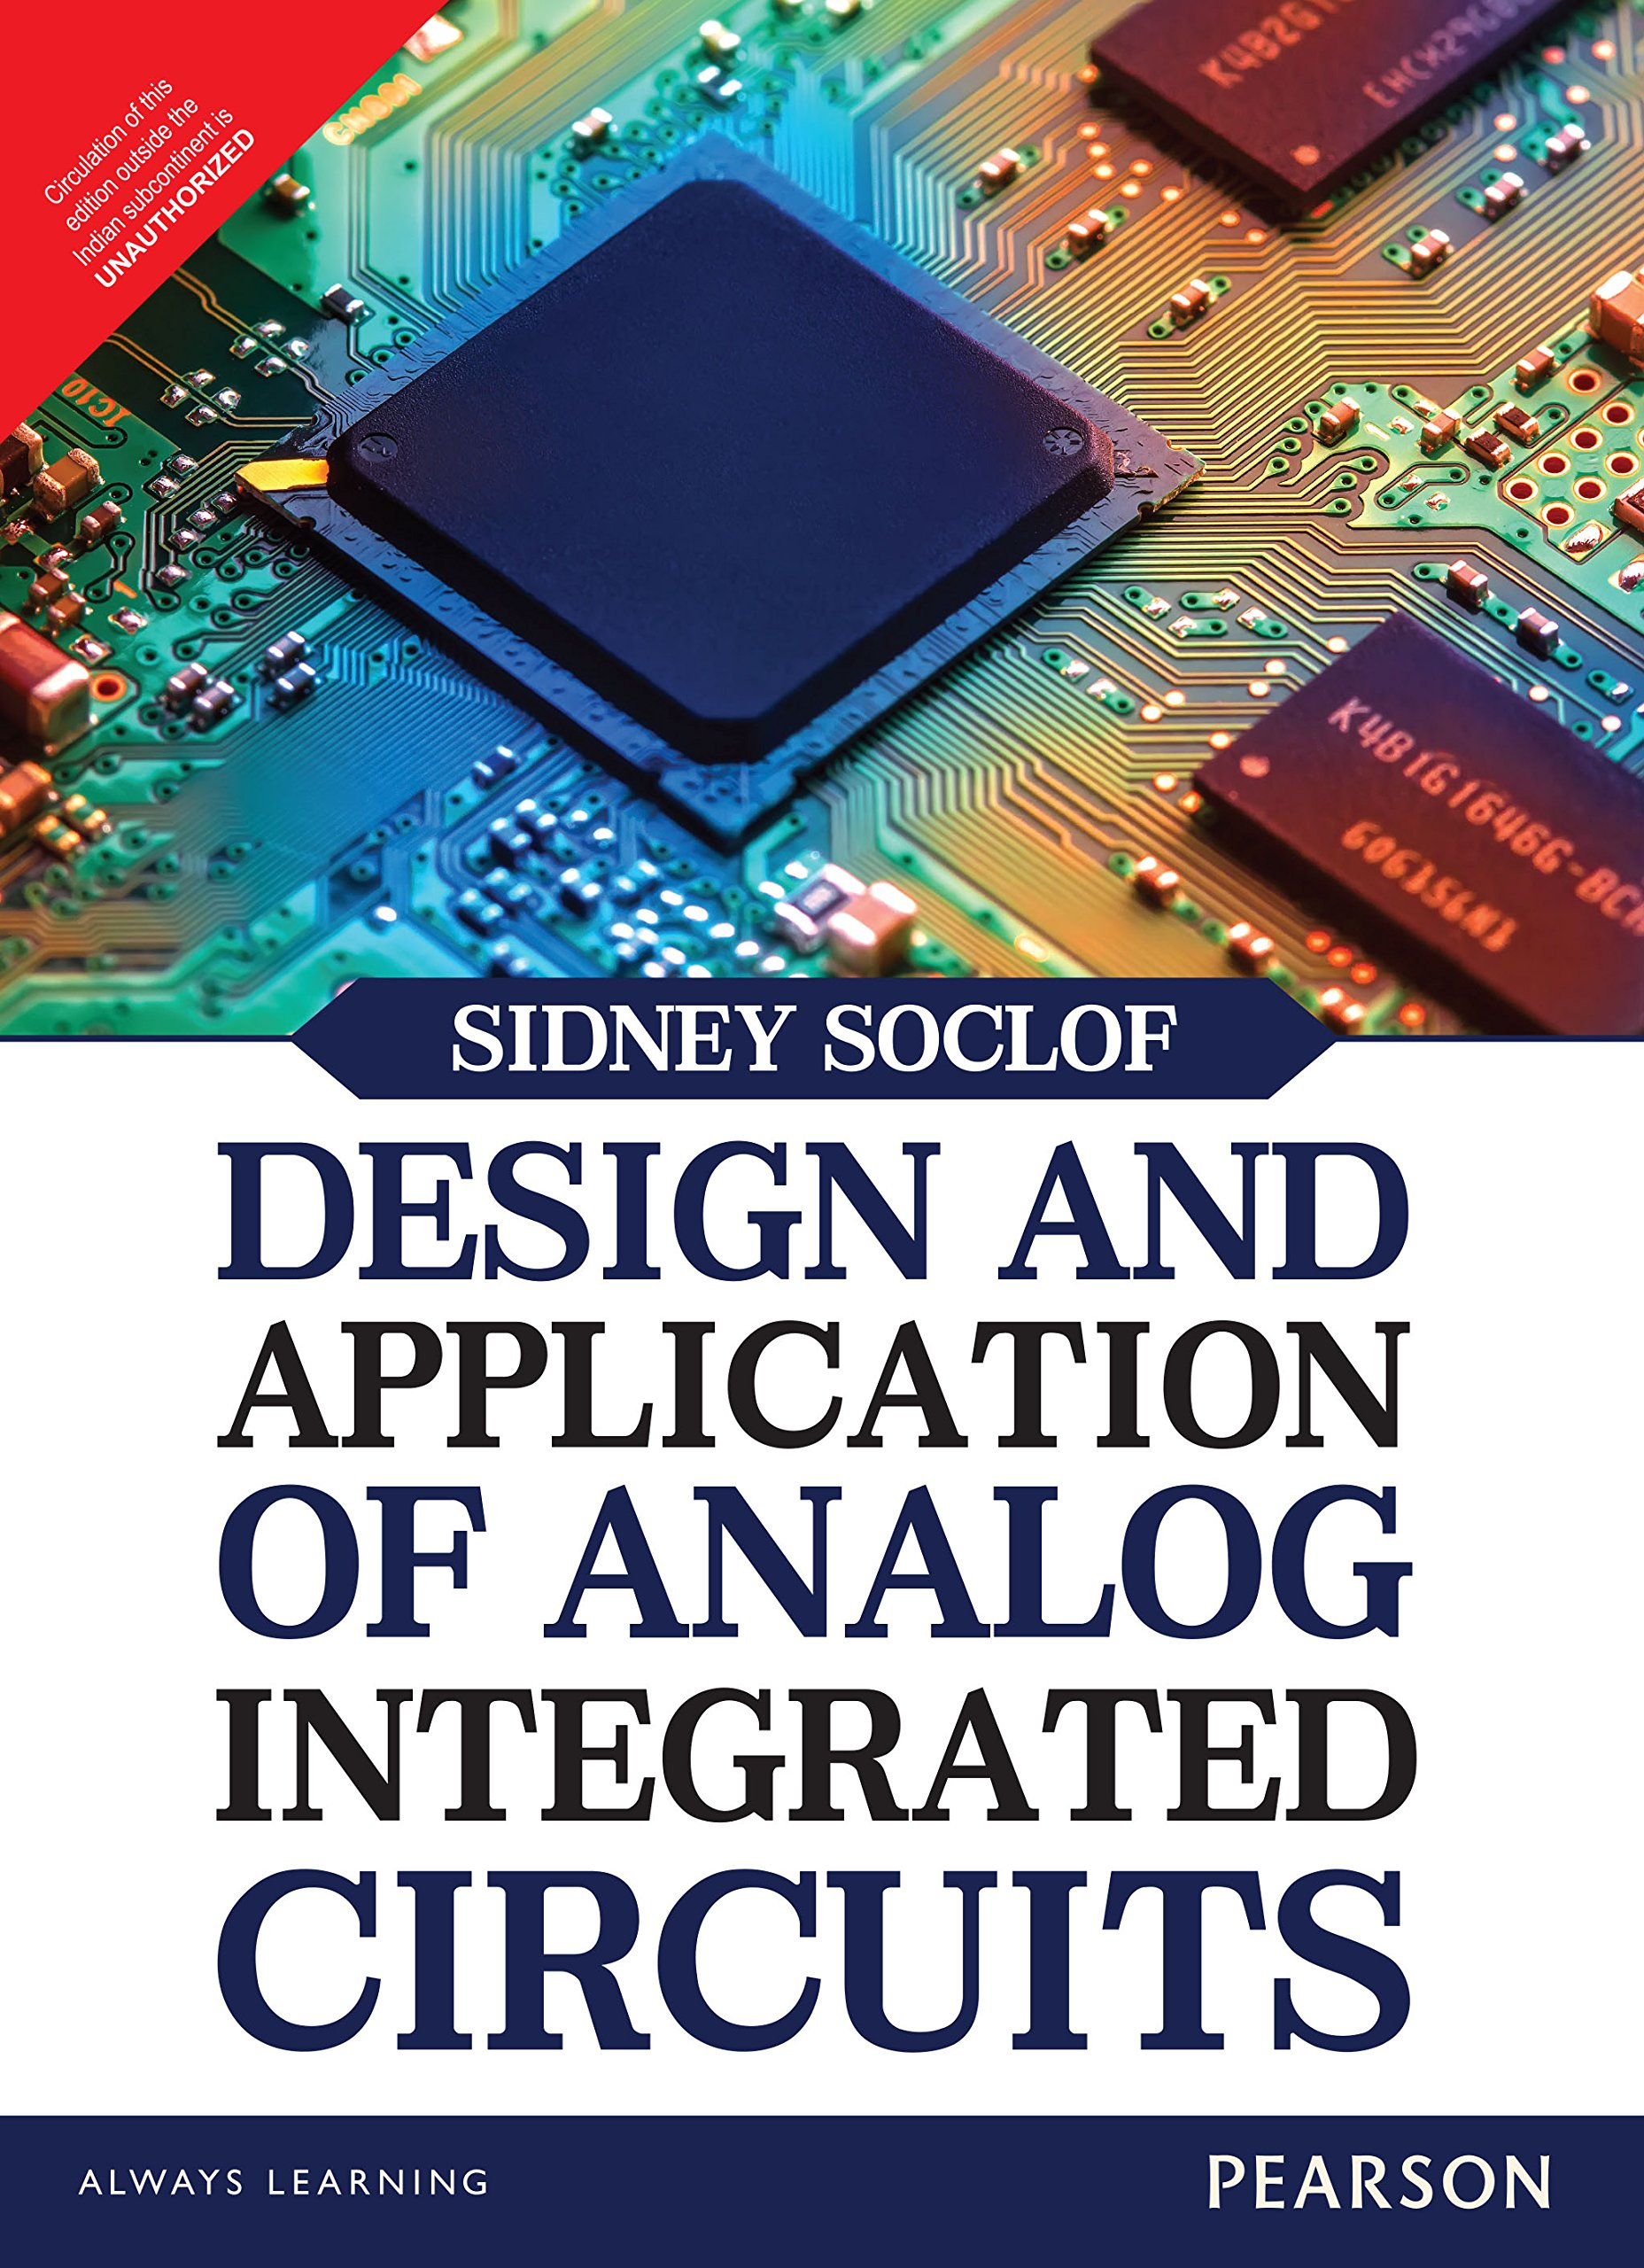 Design And Application Of Analog Integrated Circuits Sidney Soclof Circuit 9789332556928 Books